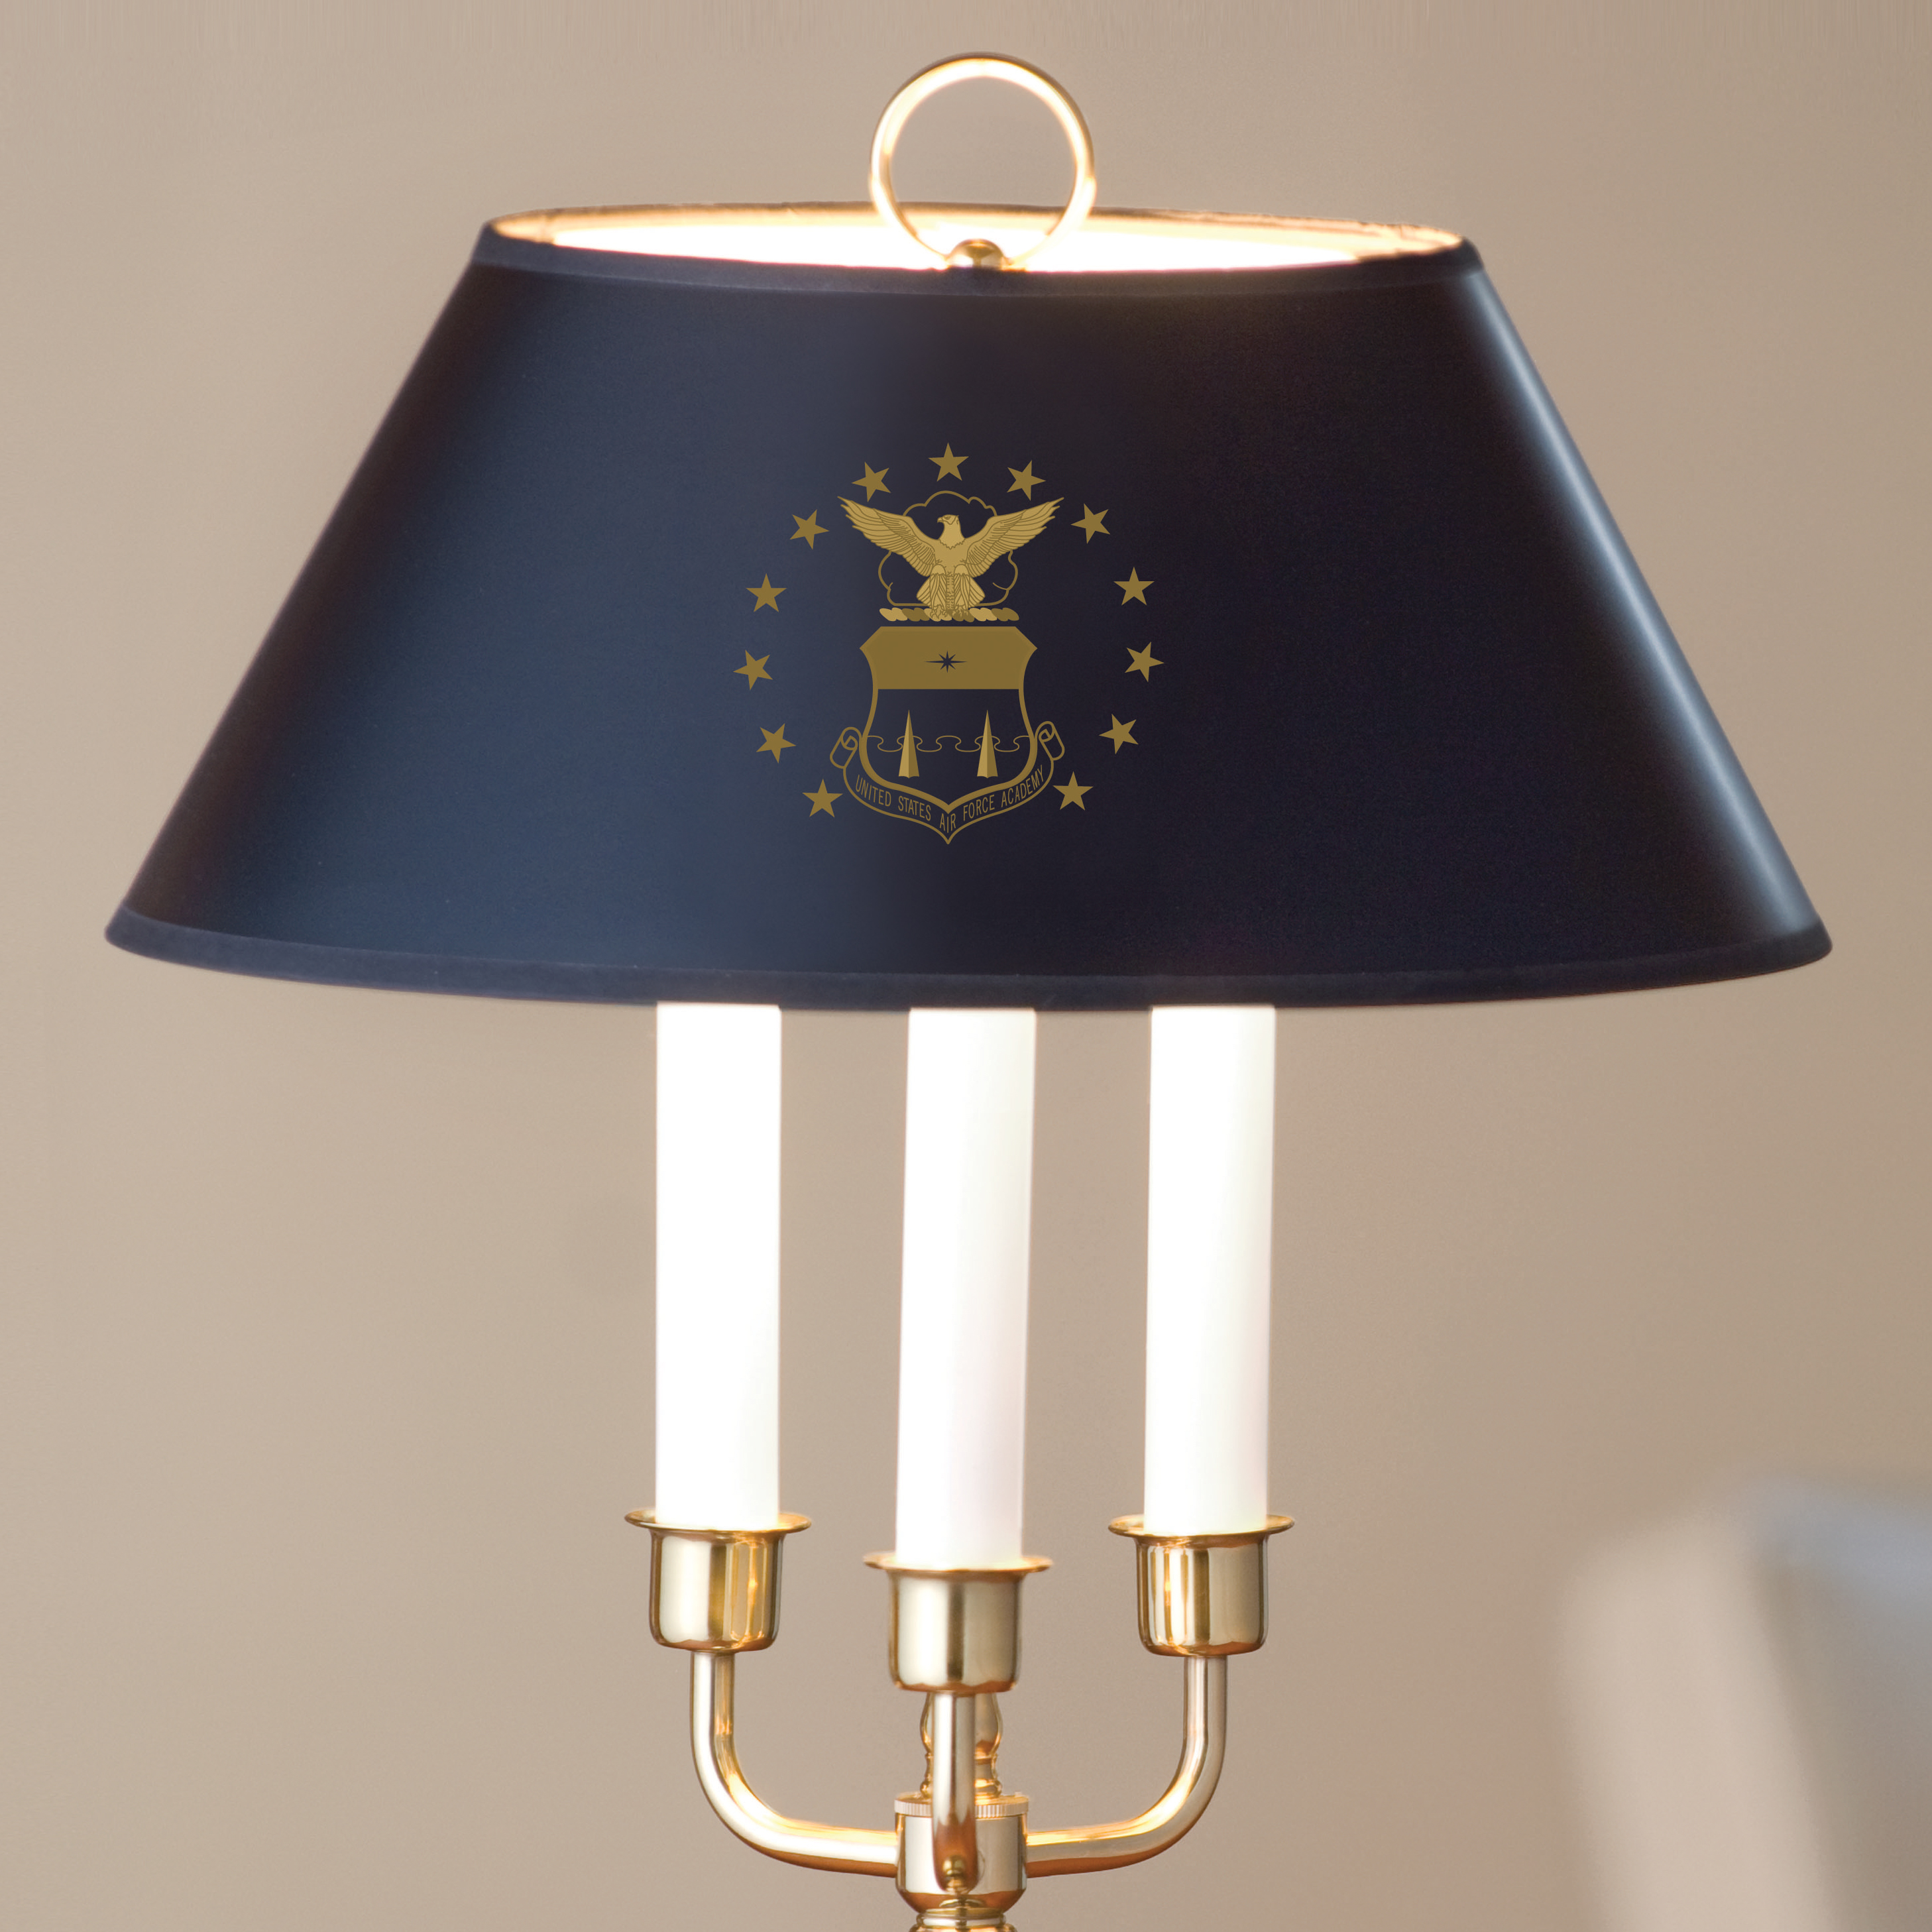 US Air Force Academy Lamp in Brass & Marble - Image 2